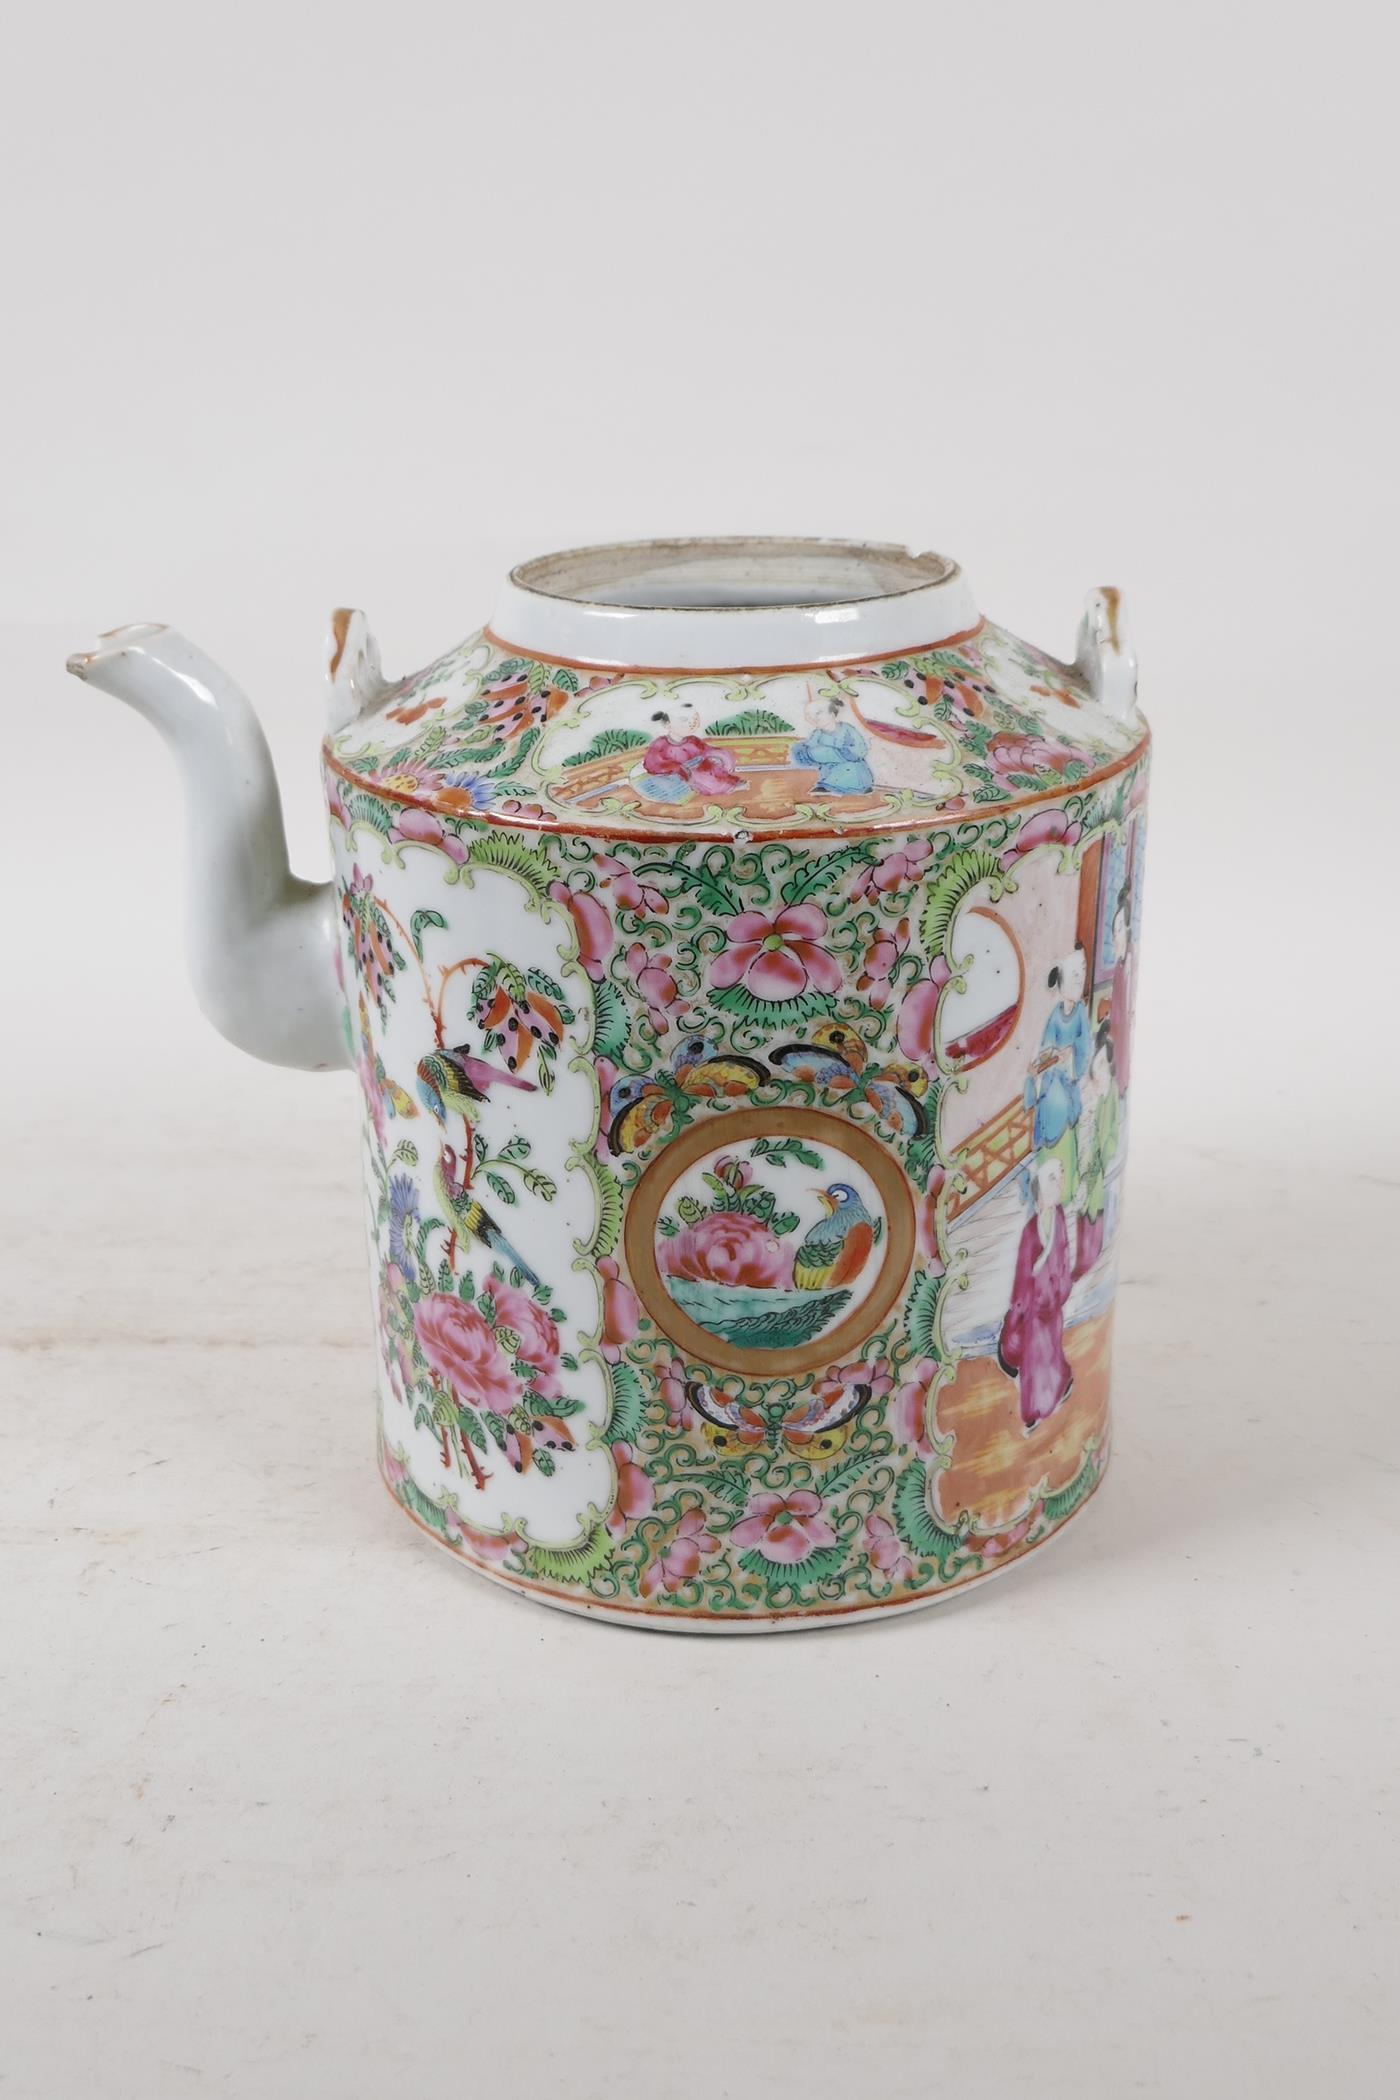 A Cantonese famille rose teapot decorated with figures, birds and flowers, A/F, and a republic - Image 5 of 7